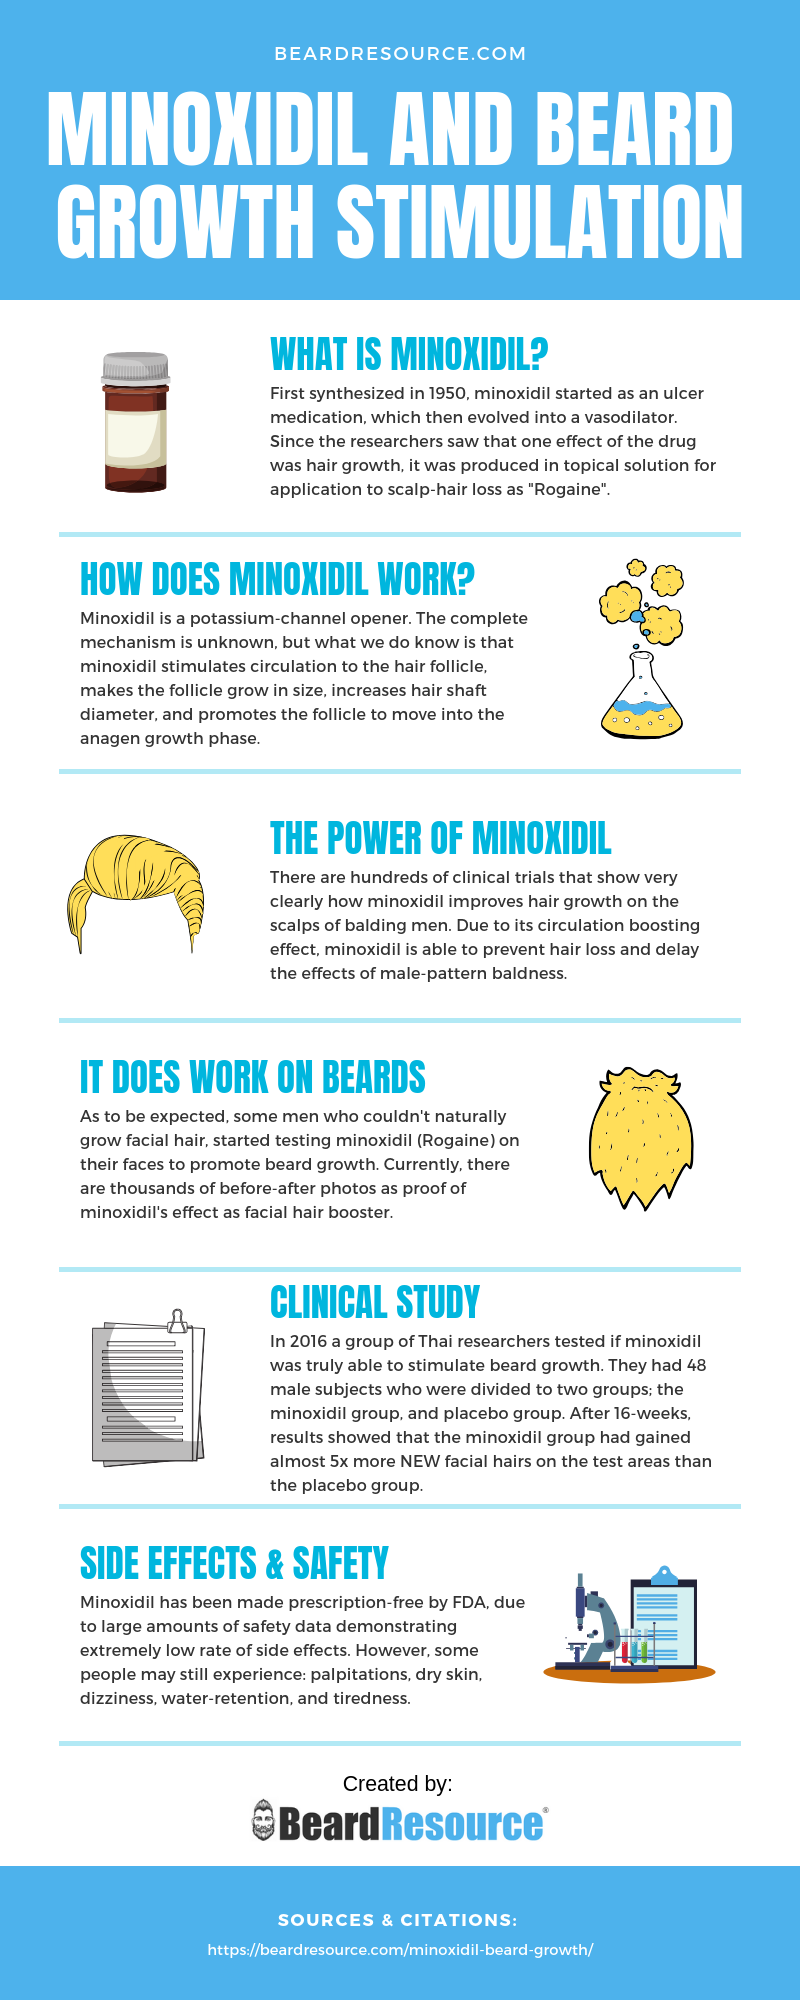 "infox minoxidil beard ""width ="" 800 ""height ="" 2000 ""srcset ="" https://coiffure-romanyck.fr/wp-content/uploads/2019/02/minoxidil-beard-infographic.png 800w, https: // beardresource. com / wp-content / uploads / 2016/06 / minoxidil-beard-infographic-120x300.png 120w, https://beardresource.com/wp-content/uploads/2016/06/minoxidil-beard-infographic-768x1920.png 768w, https://beardresource.com/wp-content/uploads/2016/06/minoxidil-beard-infographic-410x1024.png 410w, https://beardresource.com/wp-content/uploads/2016/06/minoxidil -beard-infographic-168x420.png 168w, https://beardresource.com/wp-content/uploads/2016/06/minoxidil-beard-infographic-640x1600.png 640w, https://beardresource.com/wp-content /uploads/2016/06/minoxidil-beard-infographic-681x1703.png 681w ""tailles ="" (largeur maximale: 800px) 100vw, 800px"